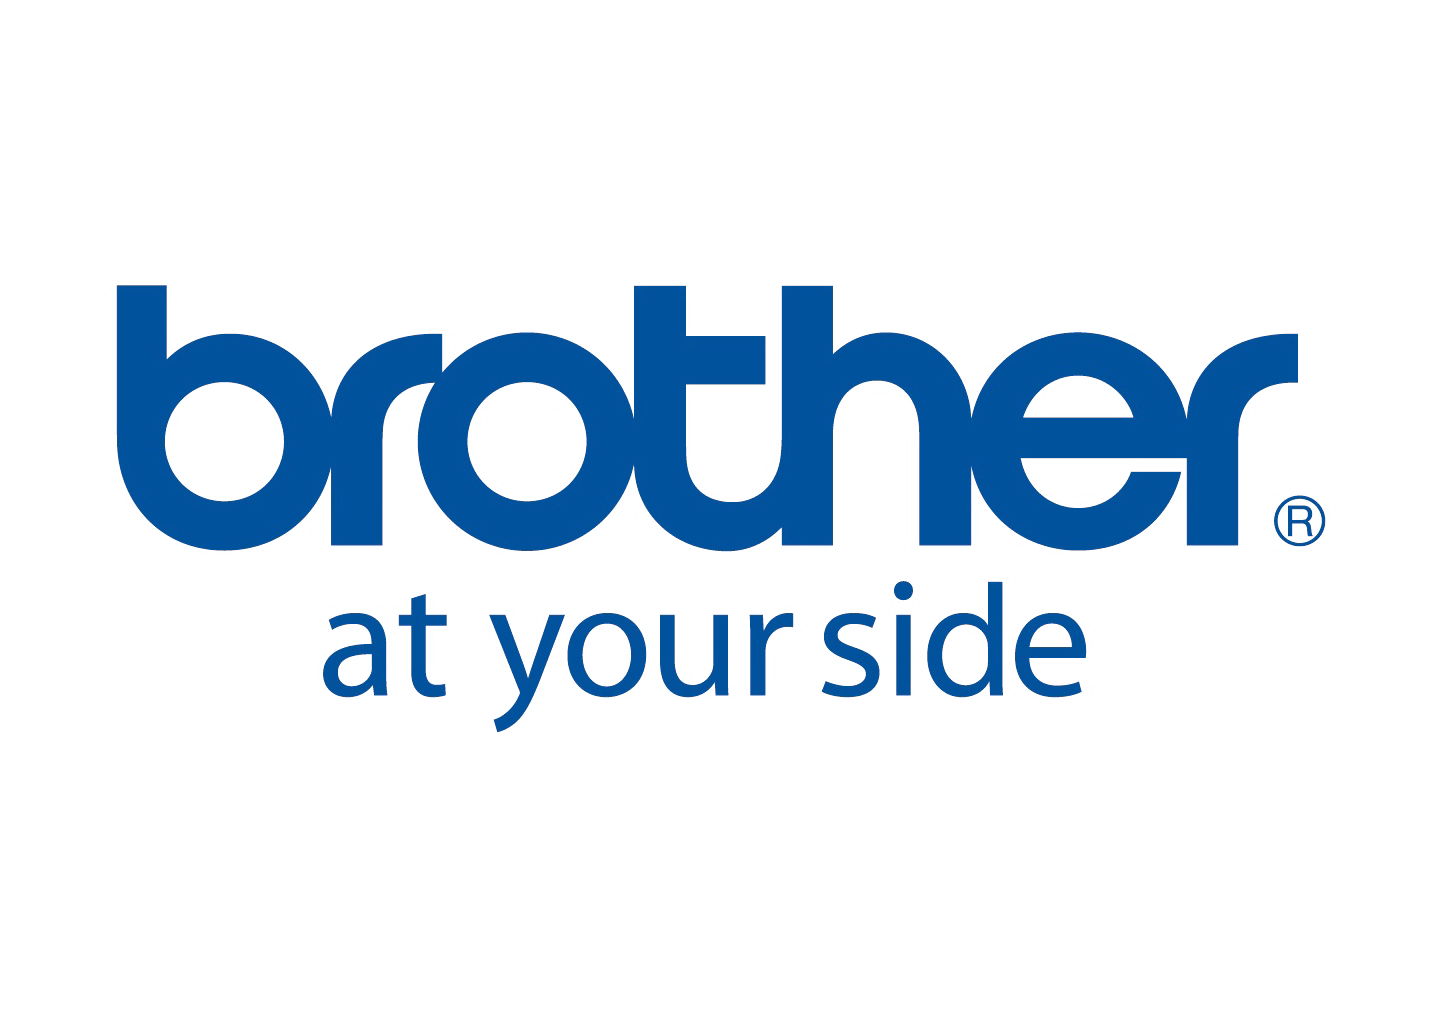 Brother - at your side